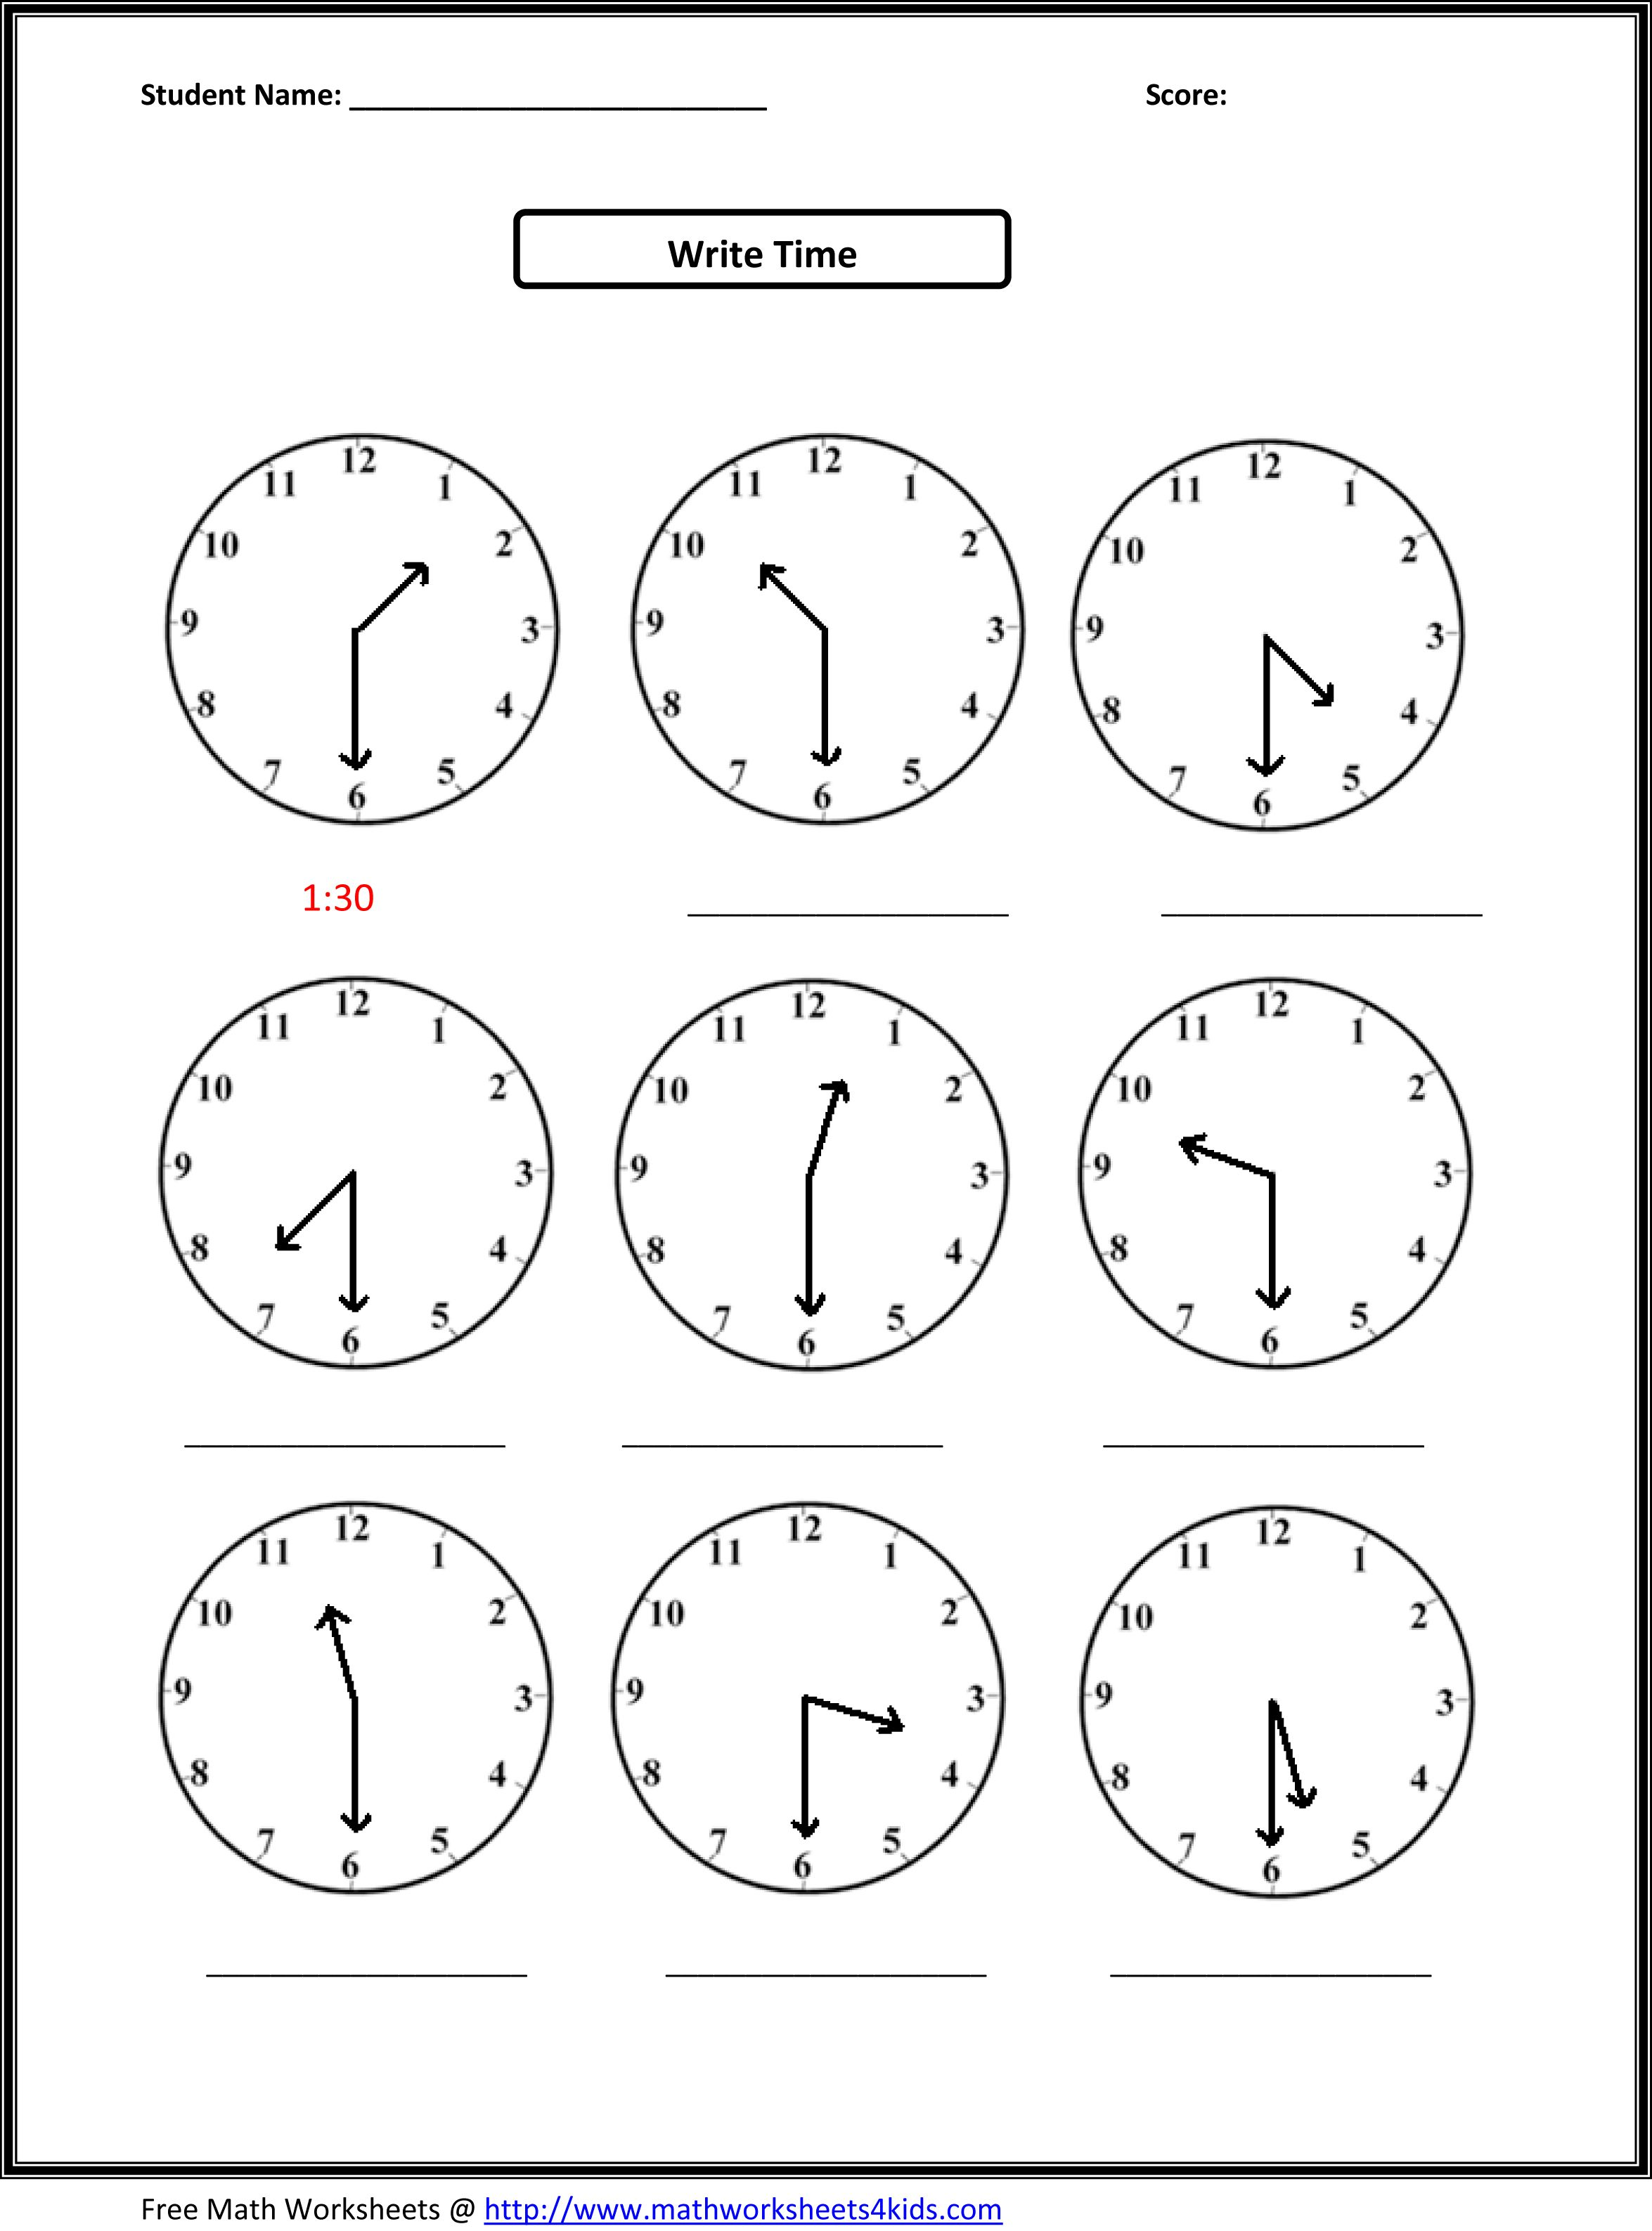 Weirdmailus  Pleasant Worksheet On Time For Grade   Reocurent With Heavenly Free Printable Telling Time Worksheets Nd Grade  Reocurent With Breathtaking Brian Tracy Goal Setting Worksheet Also Operations On Fractions Worksheet In Addition Possessive S Worksheet And Skeleton Cut Out Worksheet As Well As Nd Grade Word Search Worksheets Additionally Conversion Units Worksheet From Reocurentcom With Weirdmailus  Heavenly Worksheet On Time For Grade   Reocurent With Breathtaking Free Printable Telling Time Worksheets Nd Grade  Reocurent And Pleasant Brian Tracy Goal Setting Worksheet Also Operations On Fractions Worksheet In Addition Possessive S Worksheet From Reocurentcom